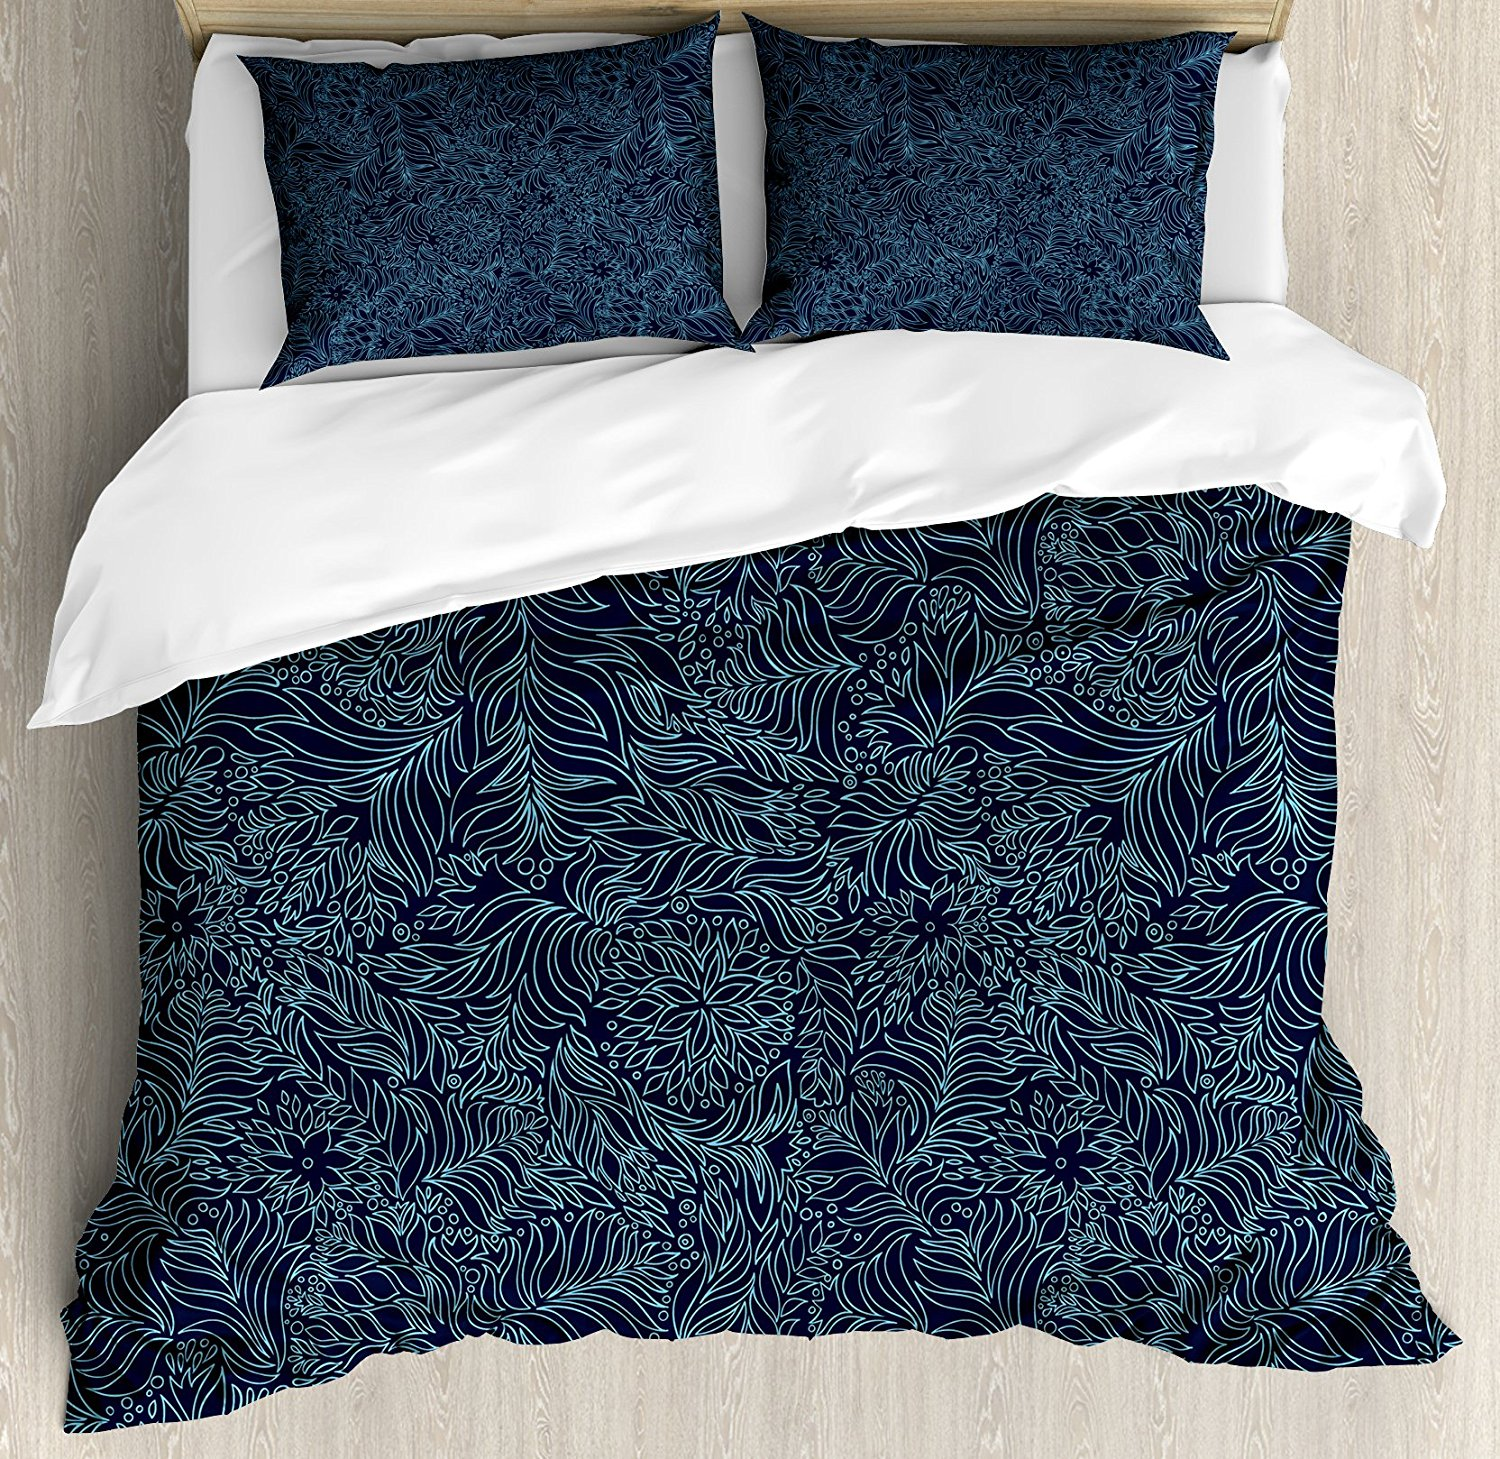 Navy and Teal Duvet Cover Set Abstract Artistic Flourish Nature Inspired Pattern Leaves Blossoms ...